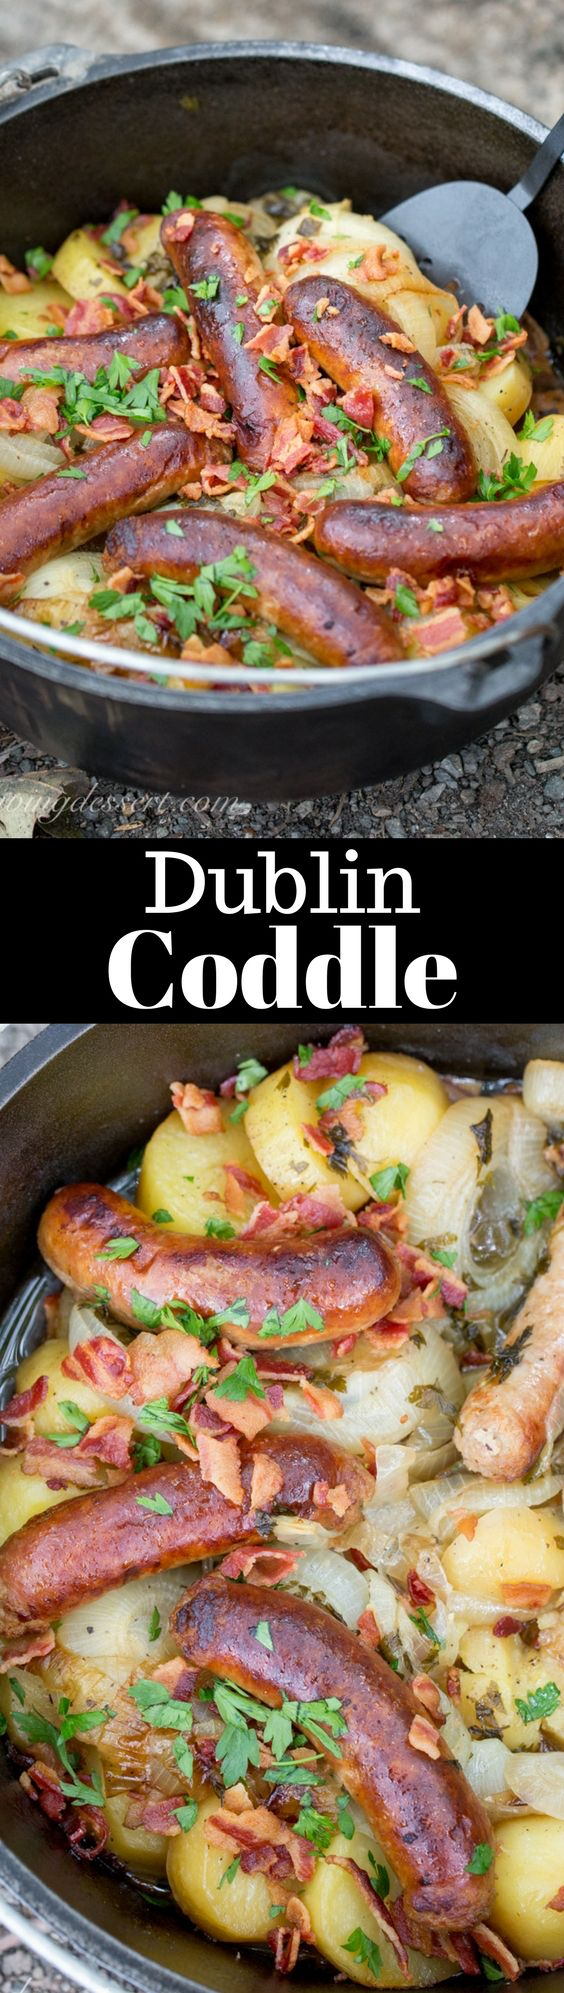 Best 25+ Dutch oven cooking ideas on Pinterest | Dutch oven ...